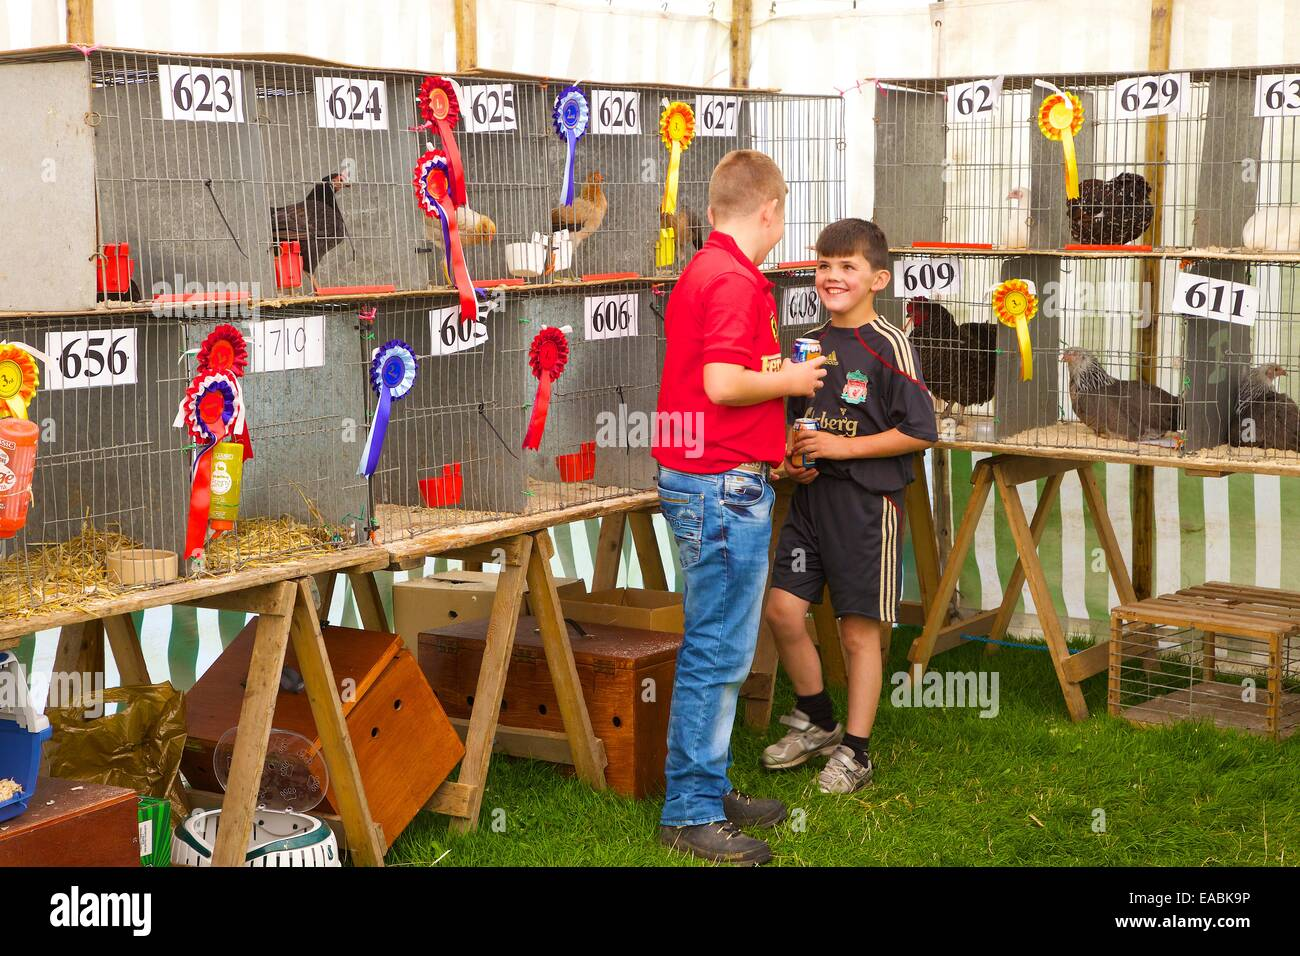 Boys joking by Show Chickens in cage at Hesket Newmarket Agricultural Show, Hesket Newmarket, Cumbria, England, - Stock Image